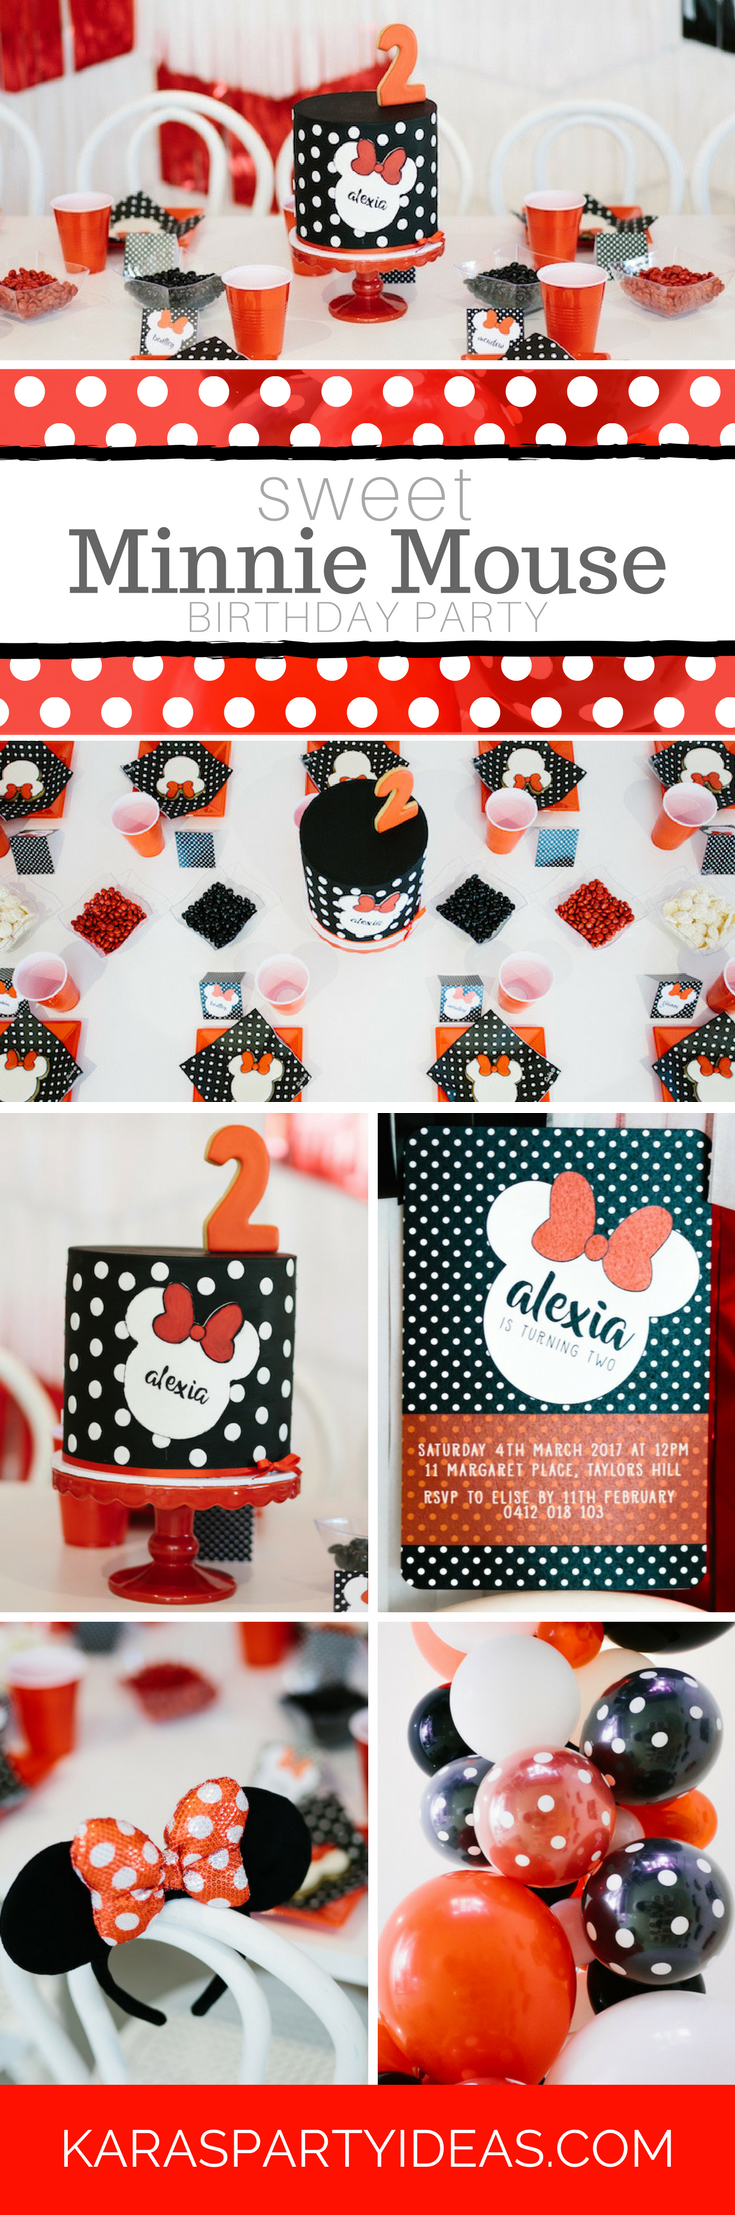 Sweet Minnie Mouse Birthday Party via Kara's Party Ideas - KarasPartyIdeas.com